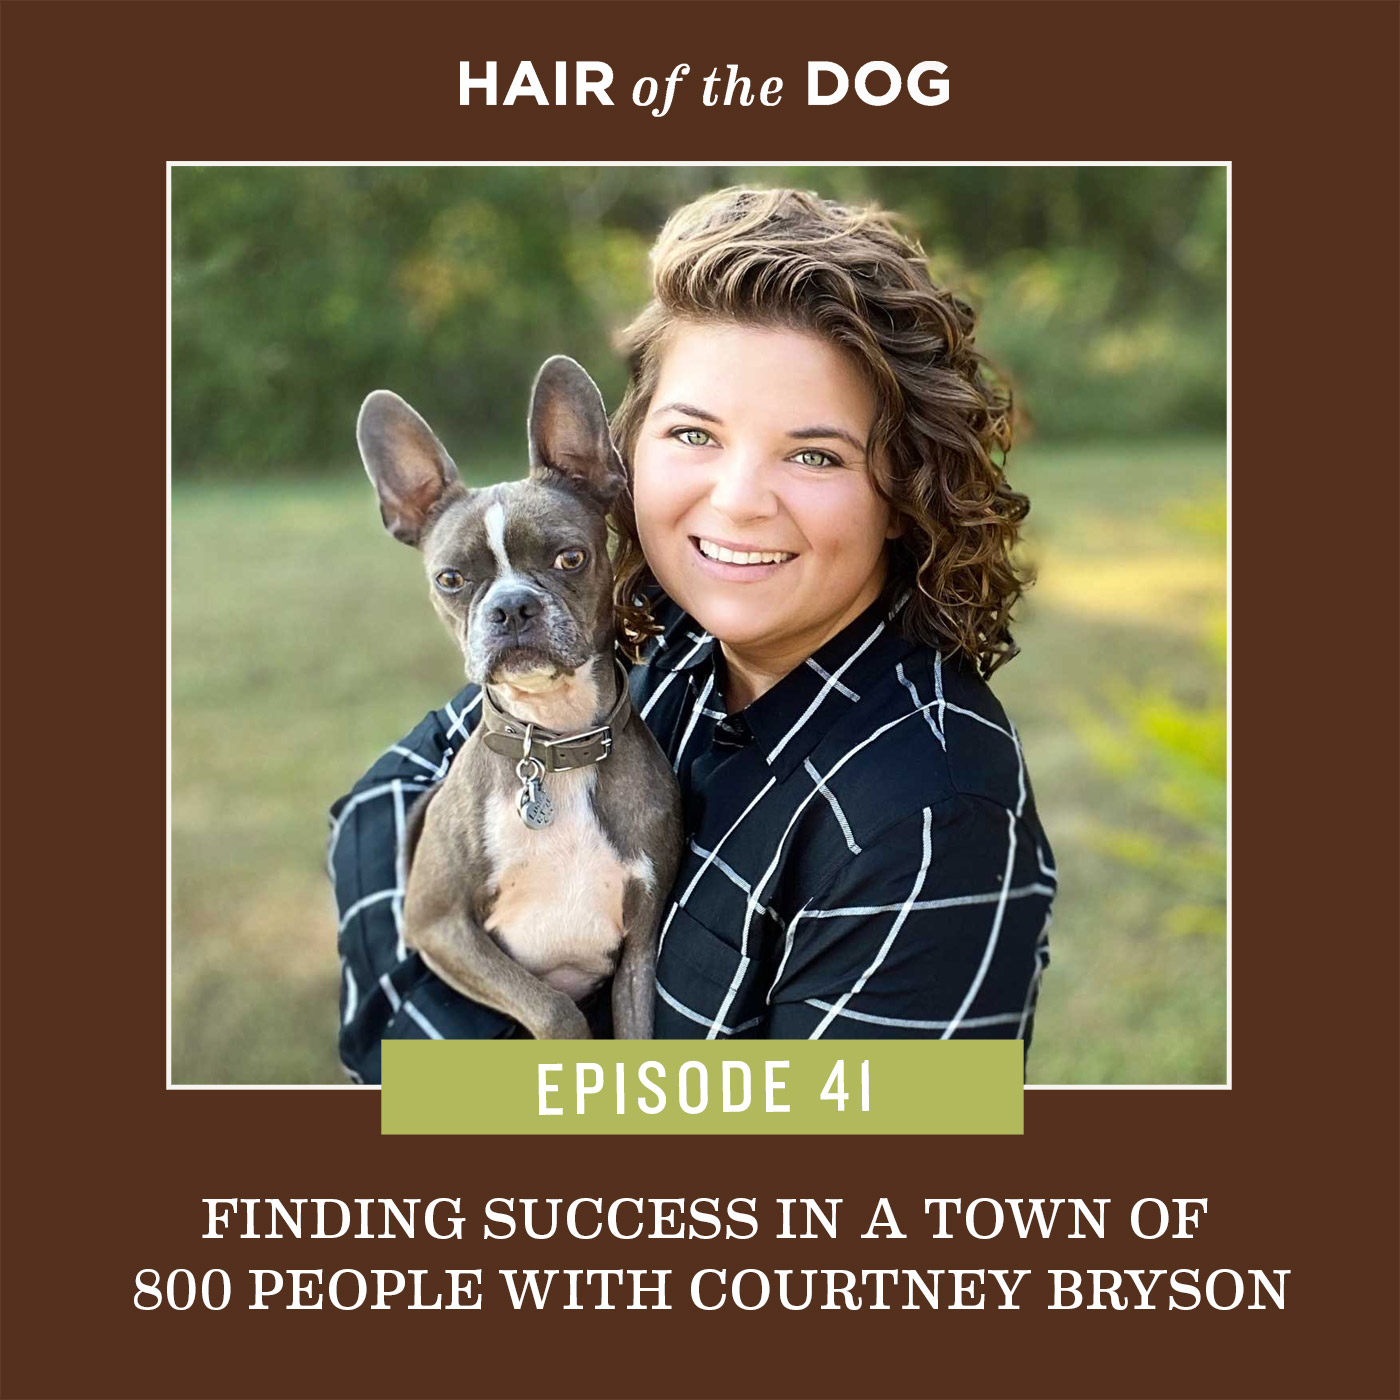 Athens area dog photographer is featured on Hair of Dog - A Pet Photographer's podcast about building a pet photography business in a small town.